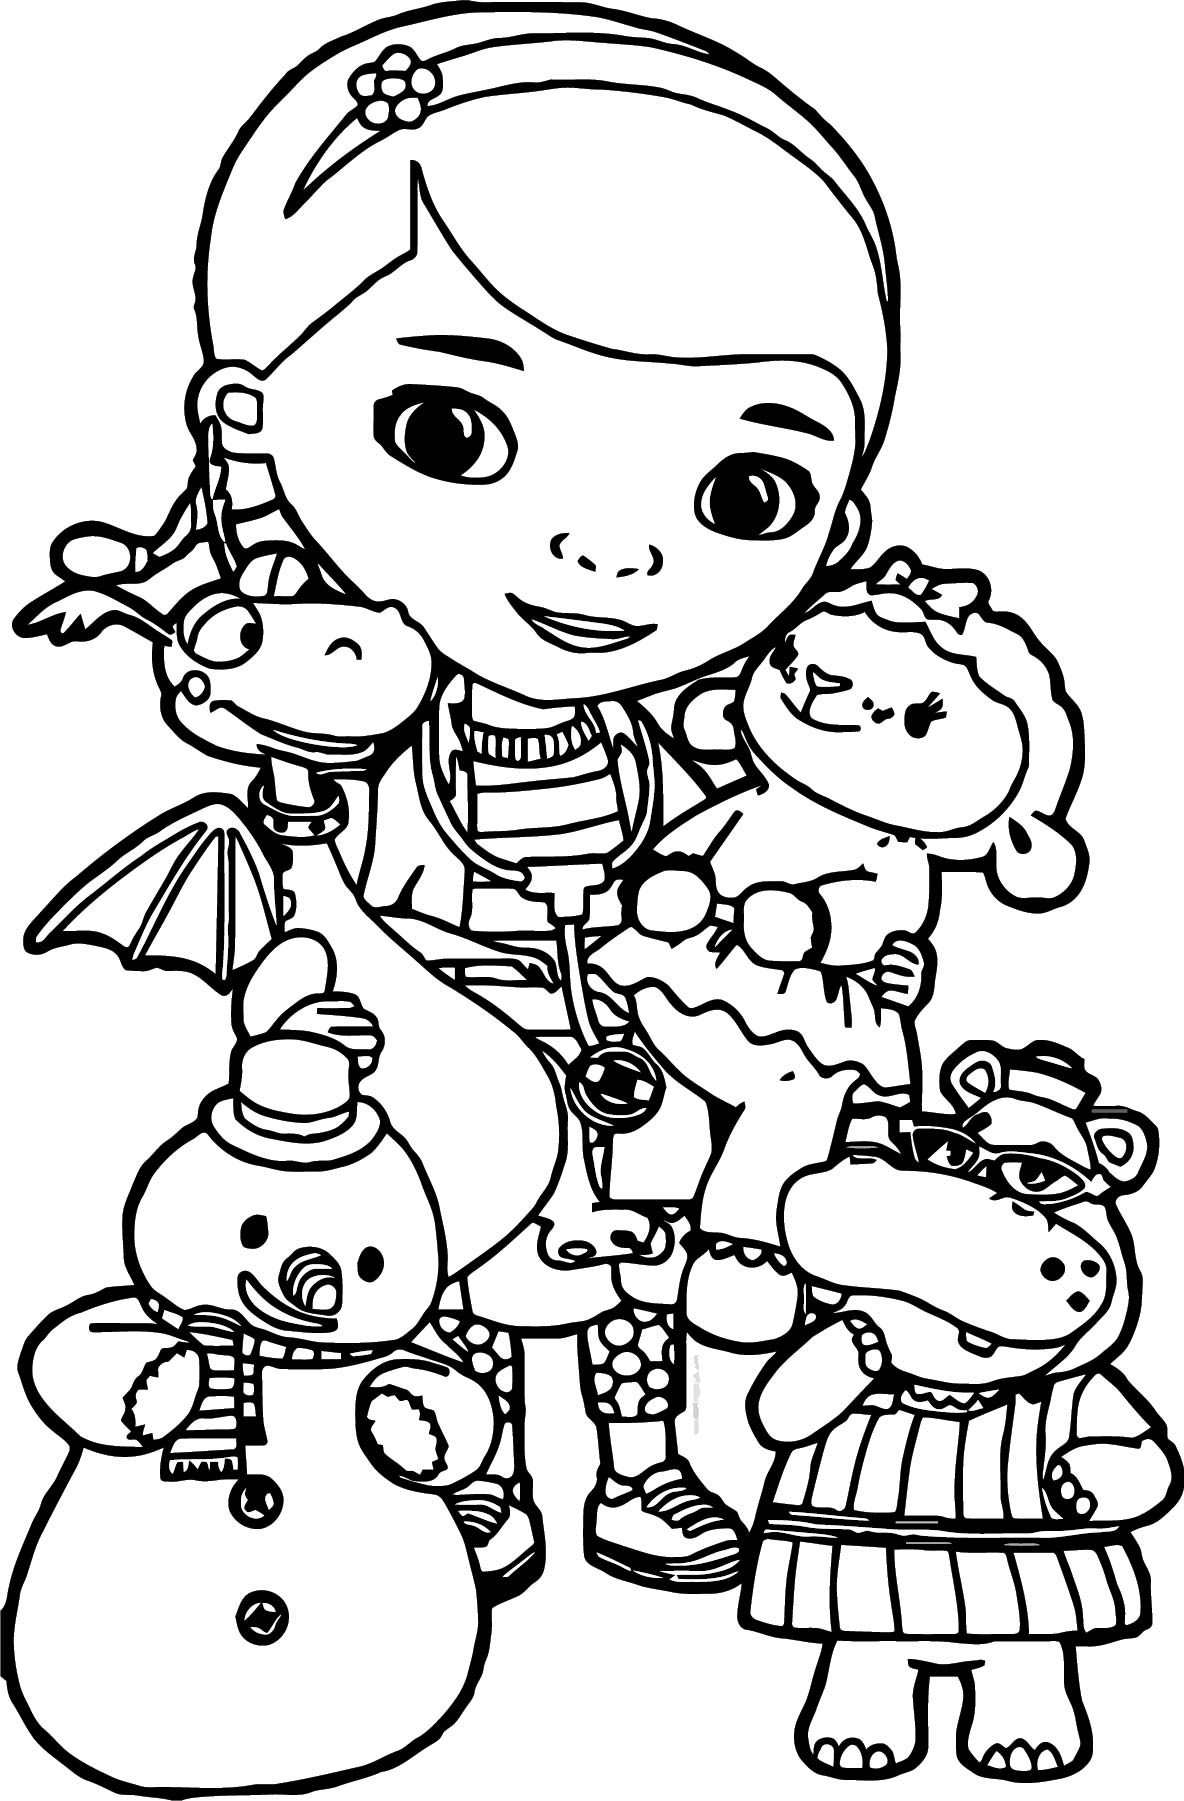 Get Inspired For Doc Mcstuffins Coloring Pages Drawing 4 Fun